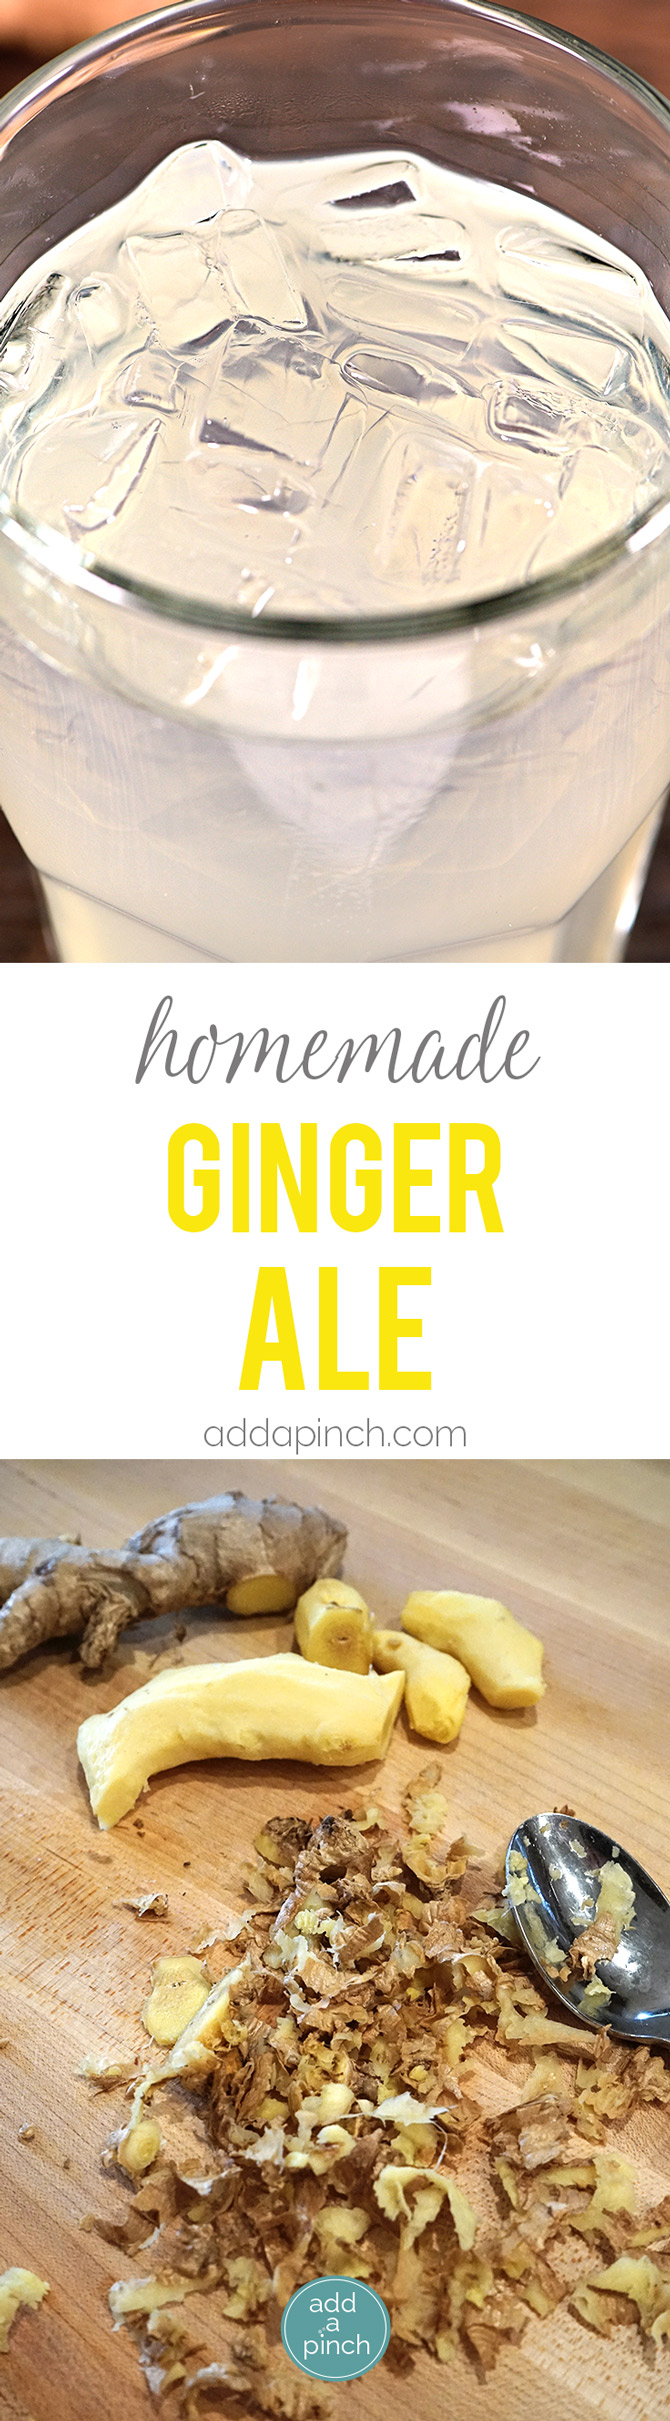 Homemade Ginger Ale - This Homemade Ginger Ale recipe takes a few ...